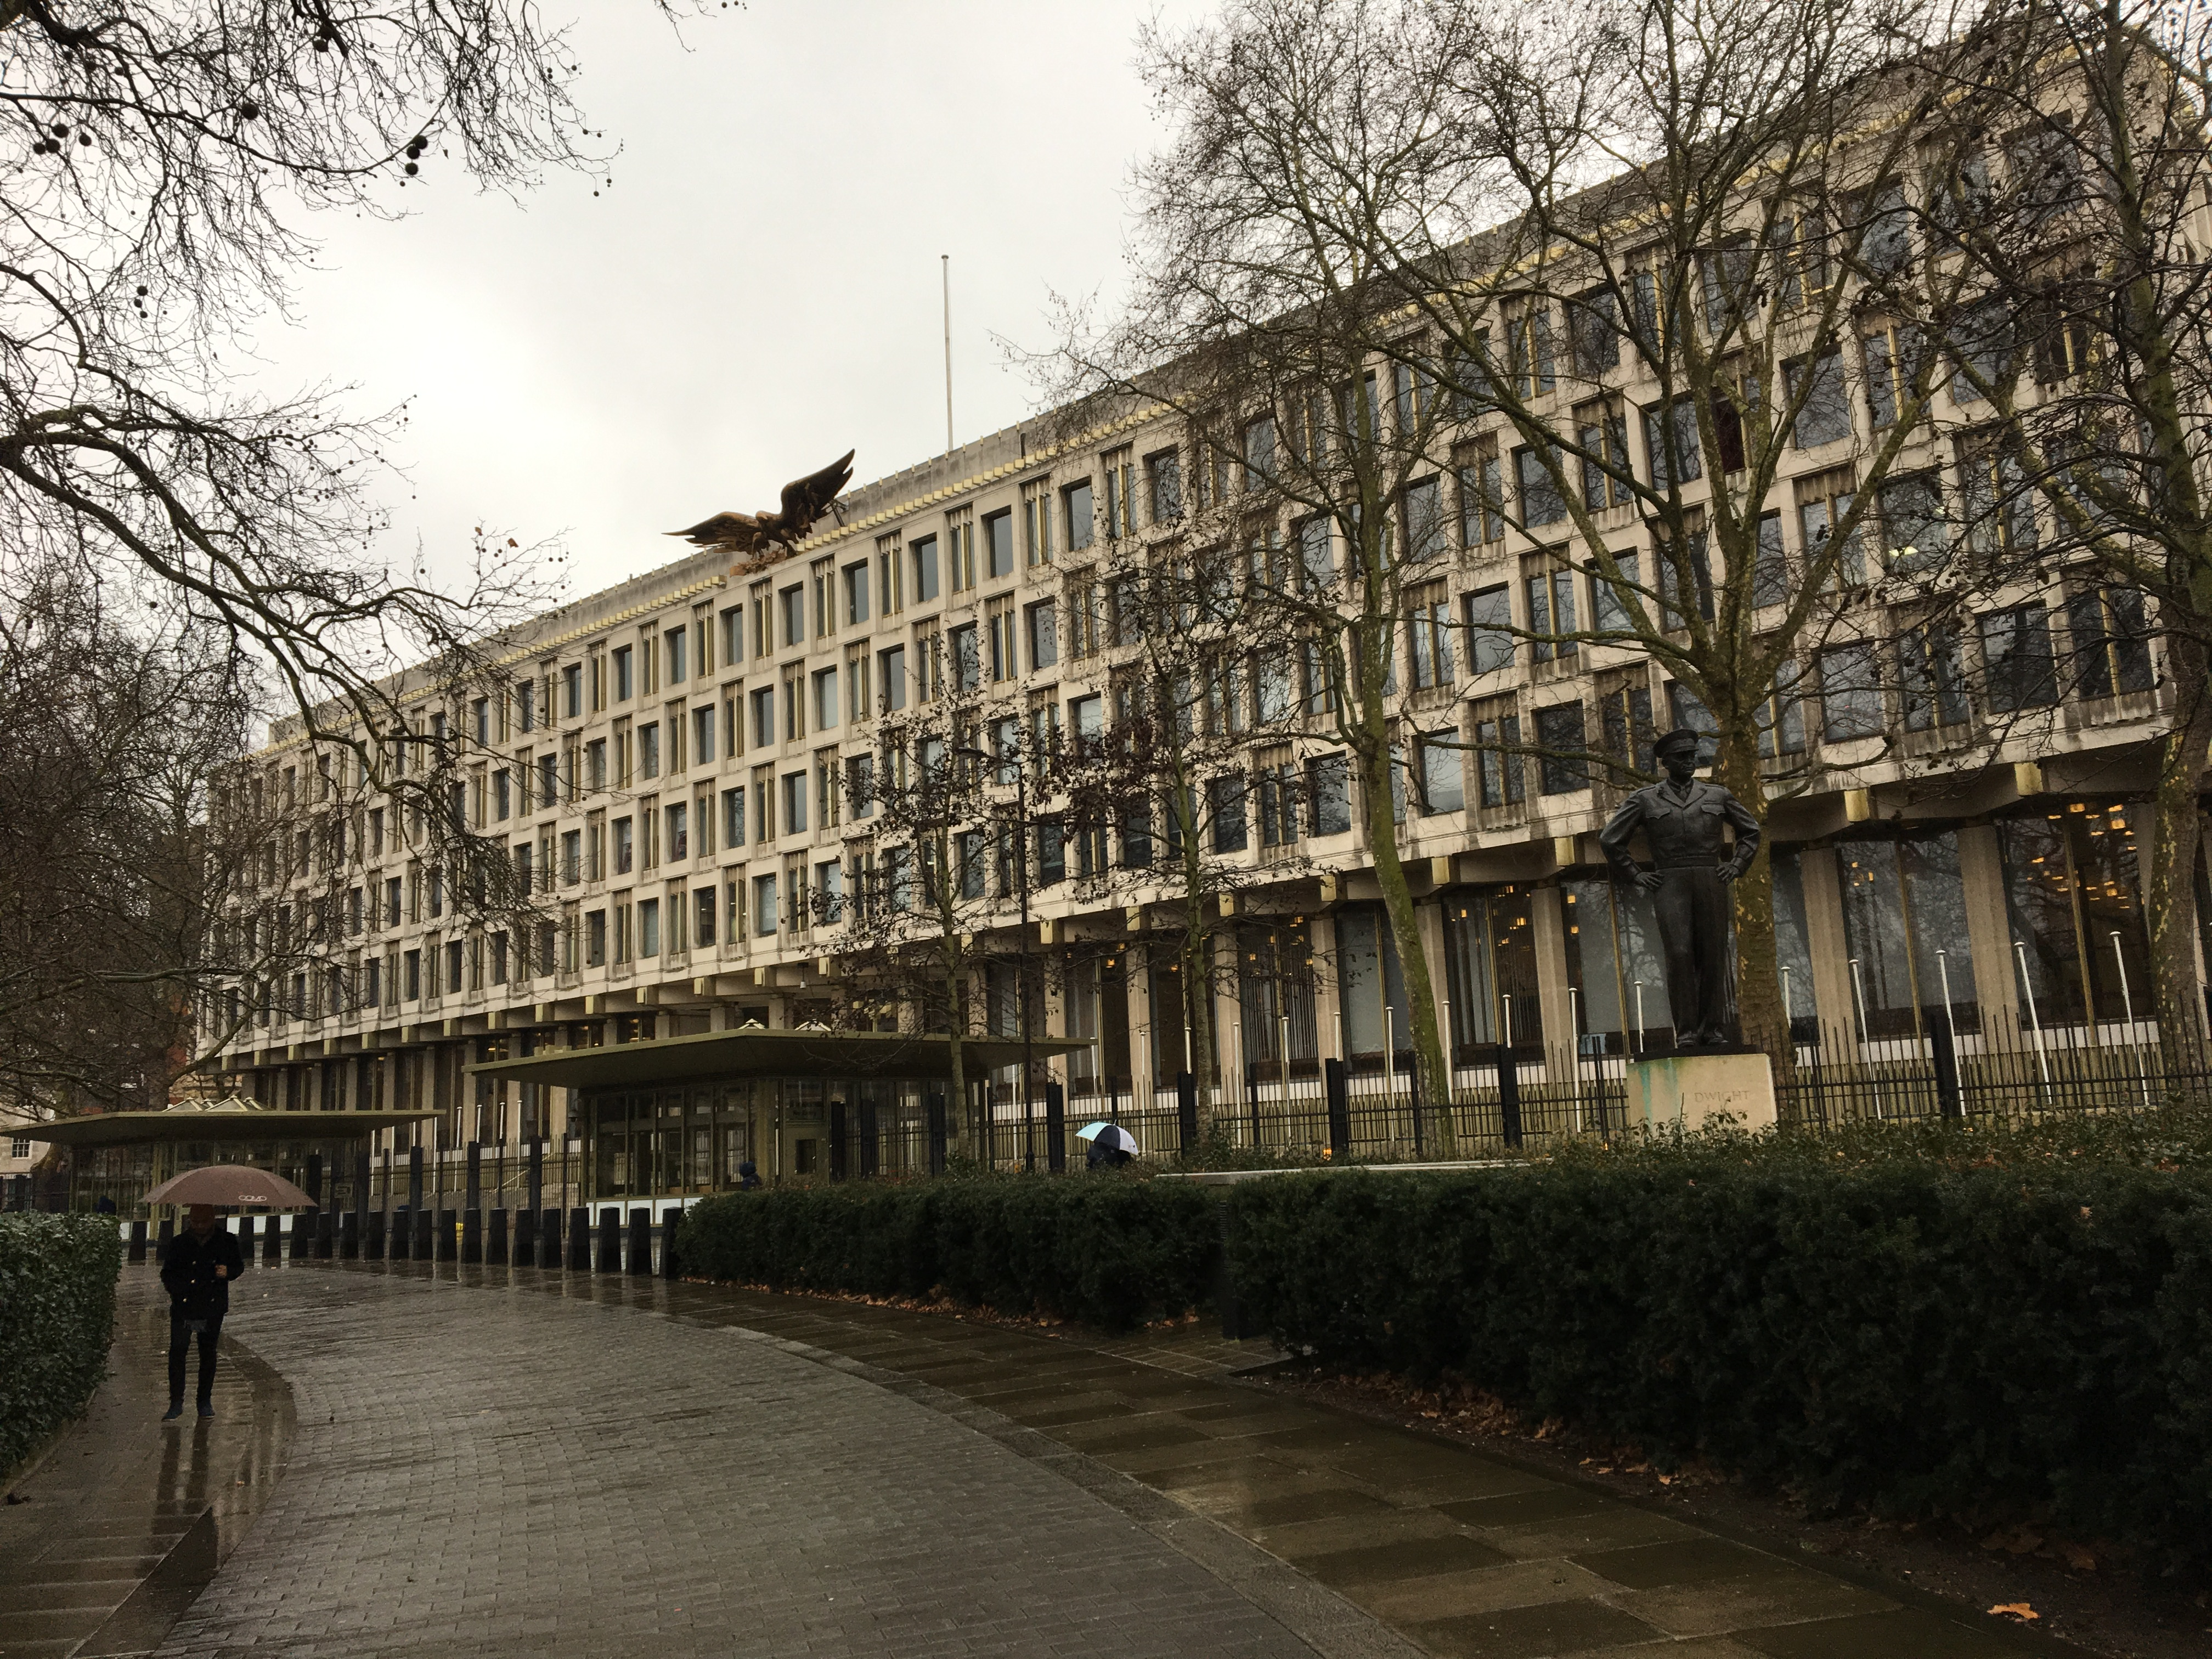 After 9/11, the former US Embassy on Grosvenor Square had to be barricaded behind concrete barriers and other makeshift security cordons. It was designed by Eliel Saarinen in 1960.